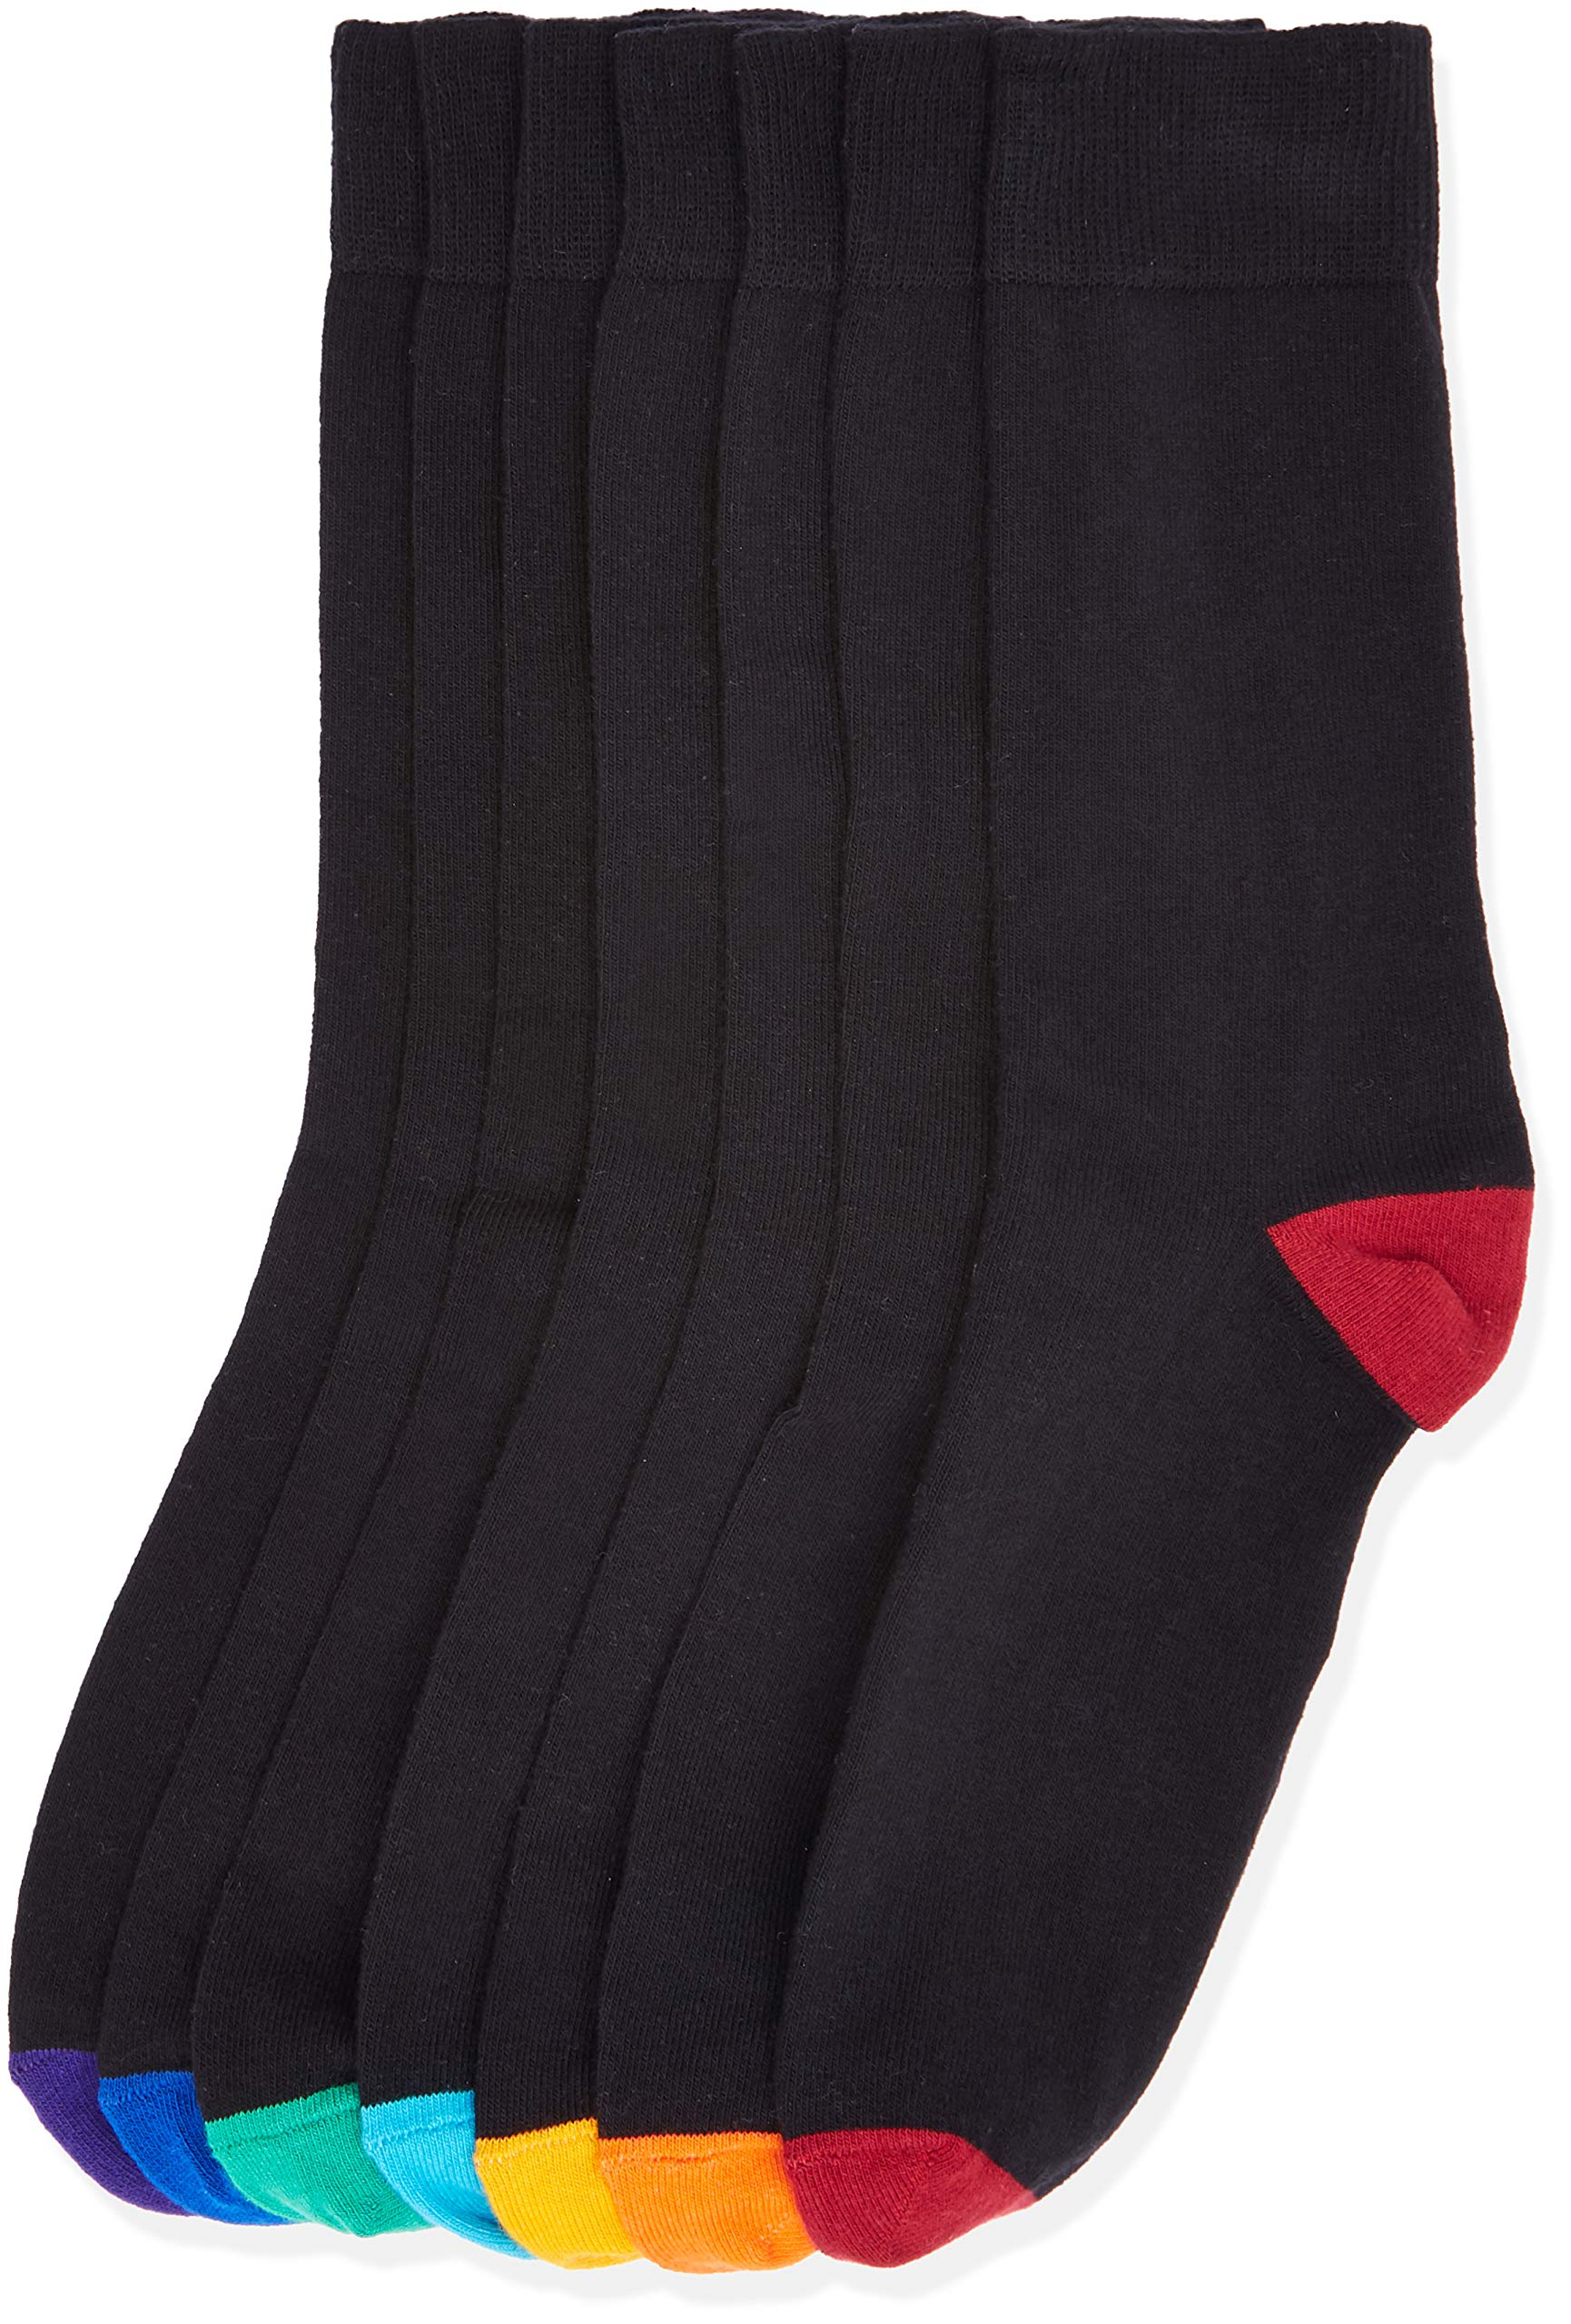 Amazon Brand - find. Men's 7 Pack Cotton Ankle Socks - Assorted Designs